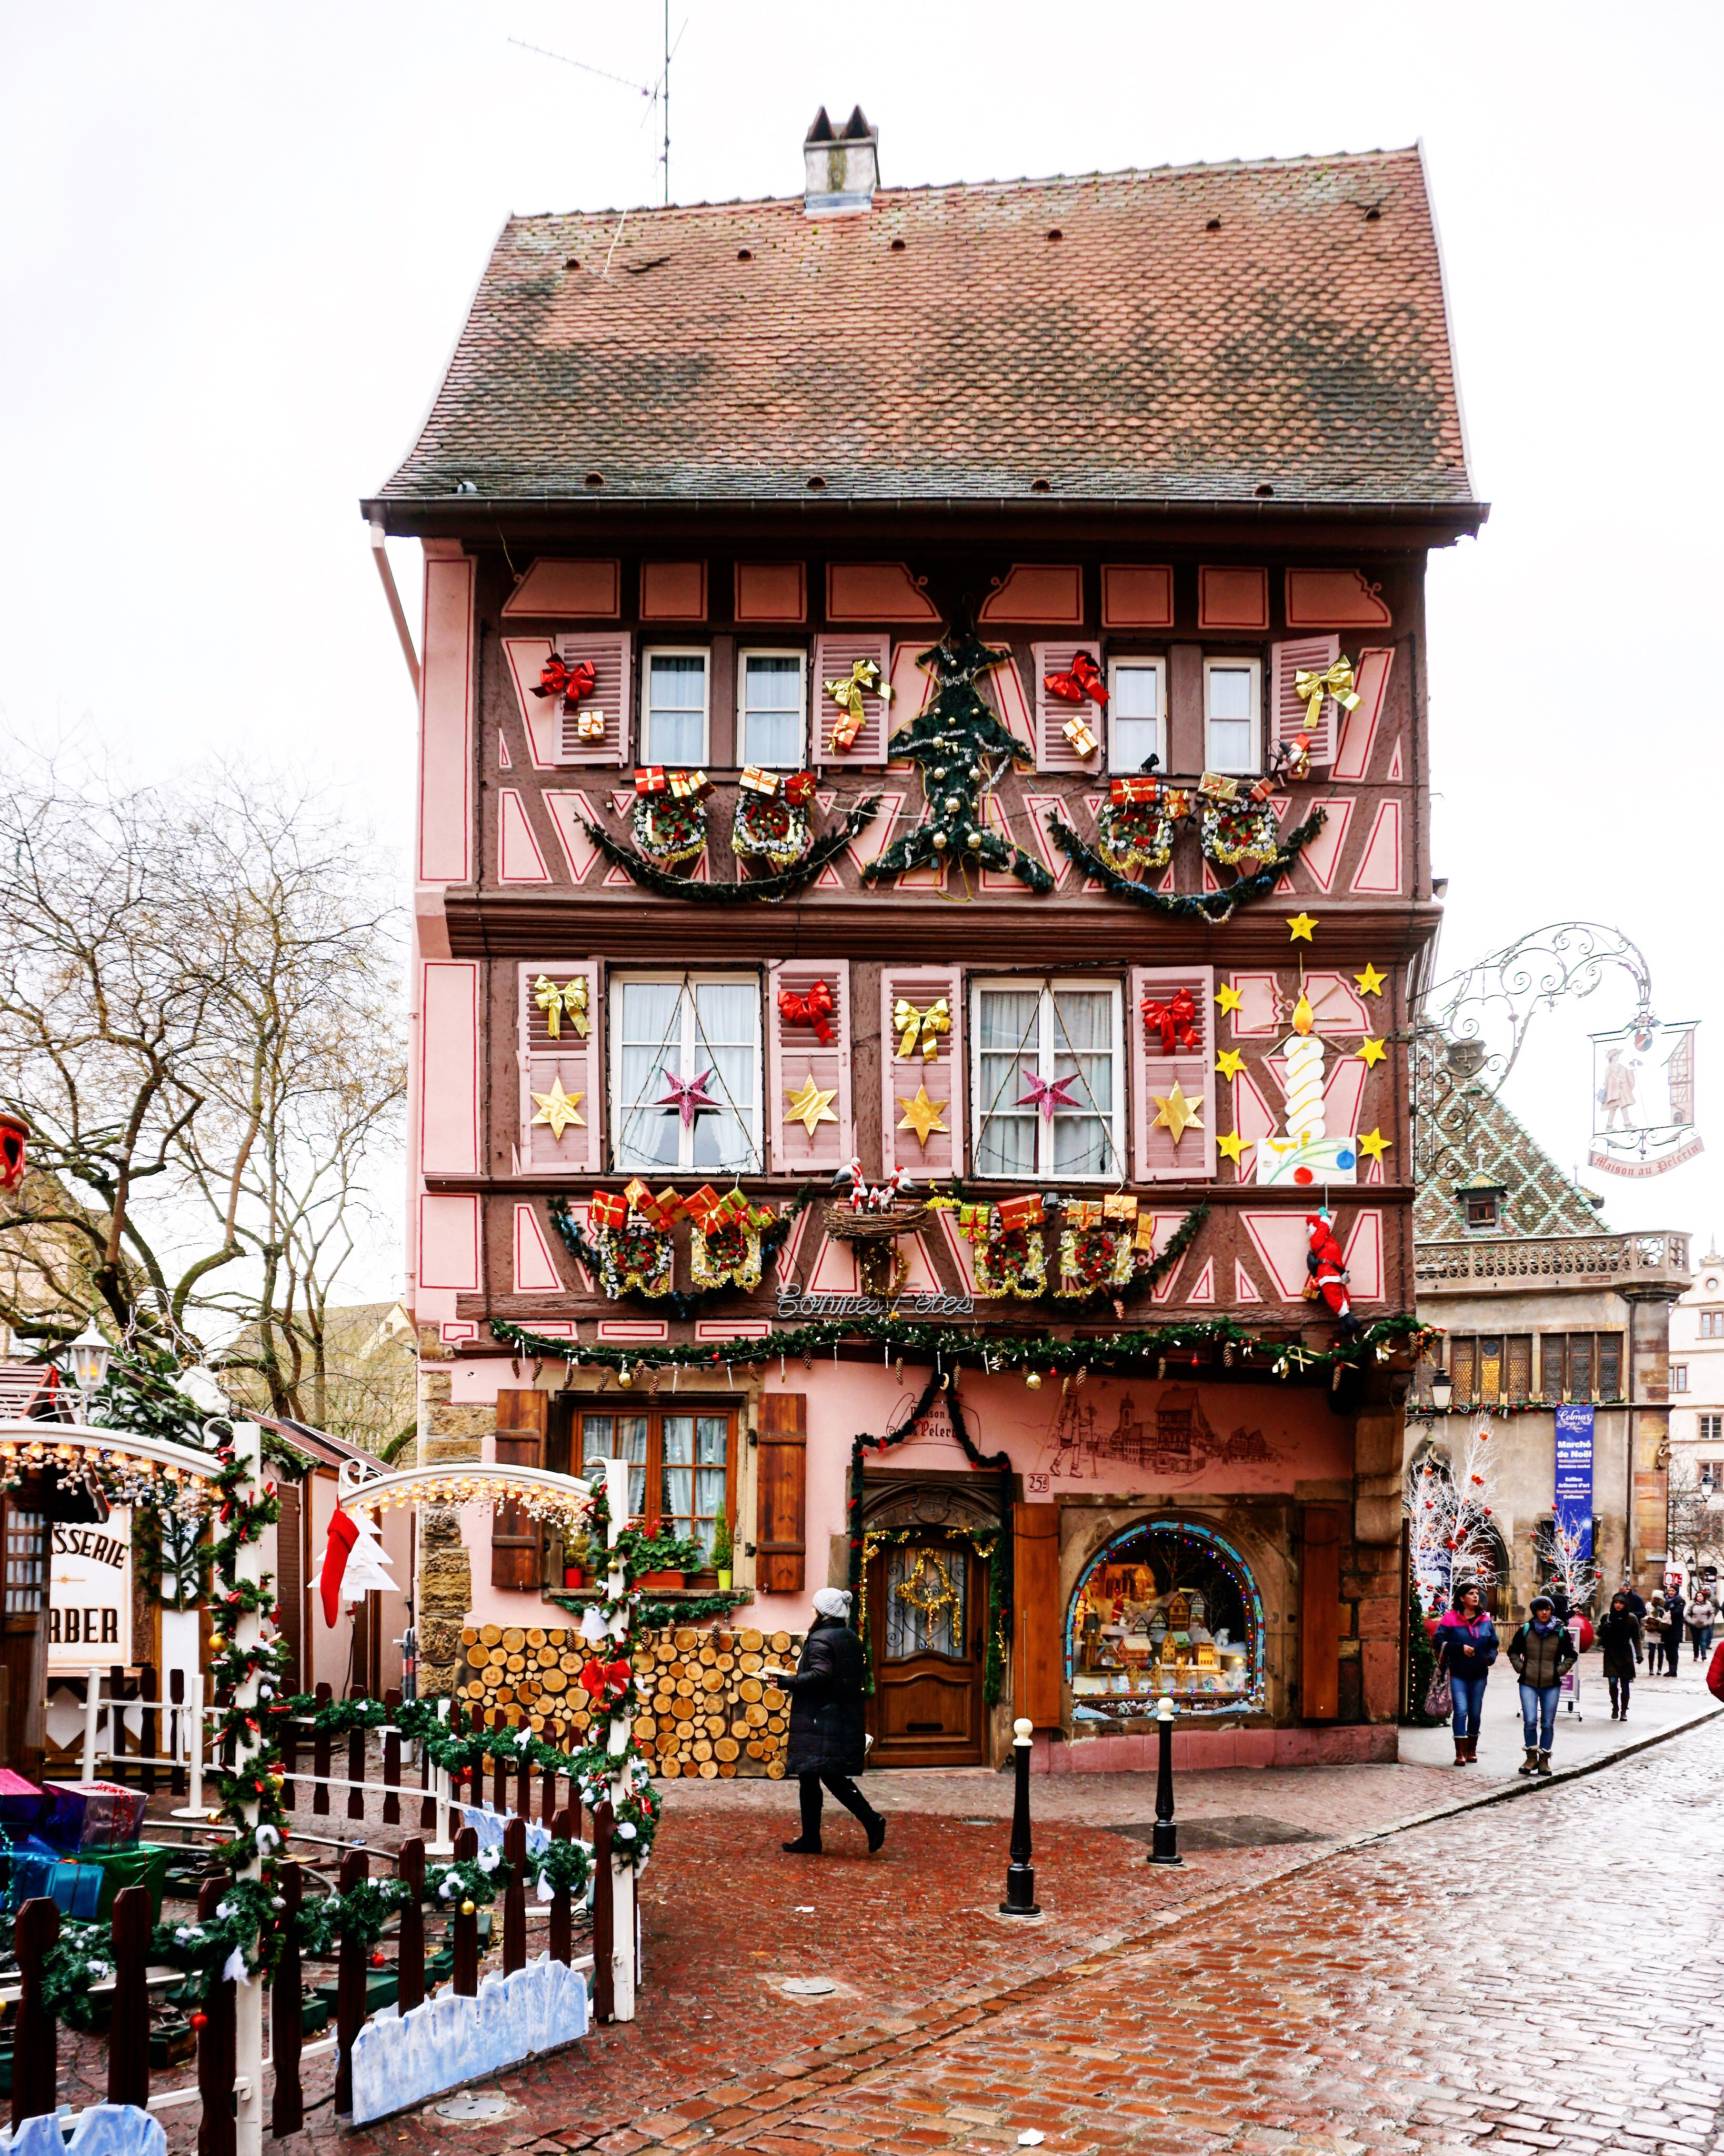 What to see in Colmar